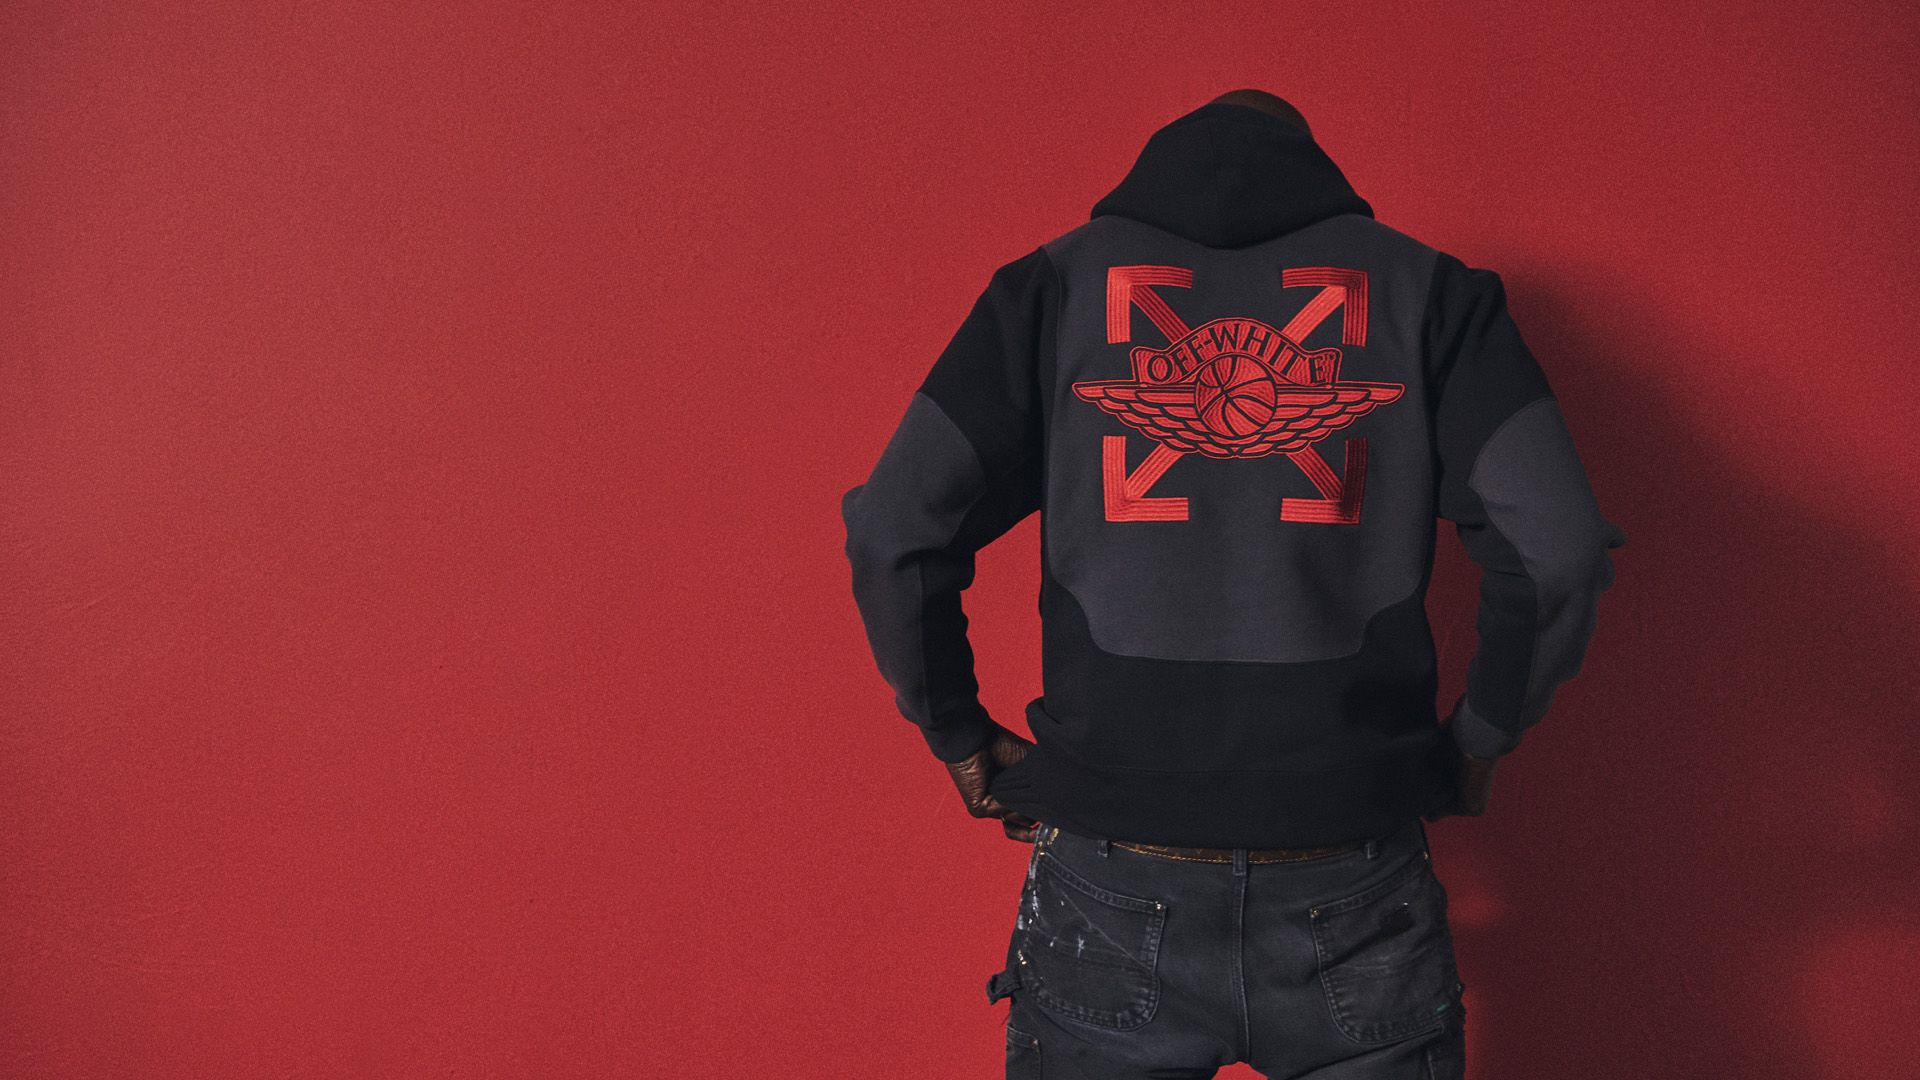 jordan-apparel-the-virgil-abloh-chicago-collaborators-collection-release-date